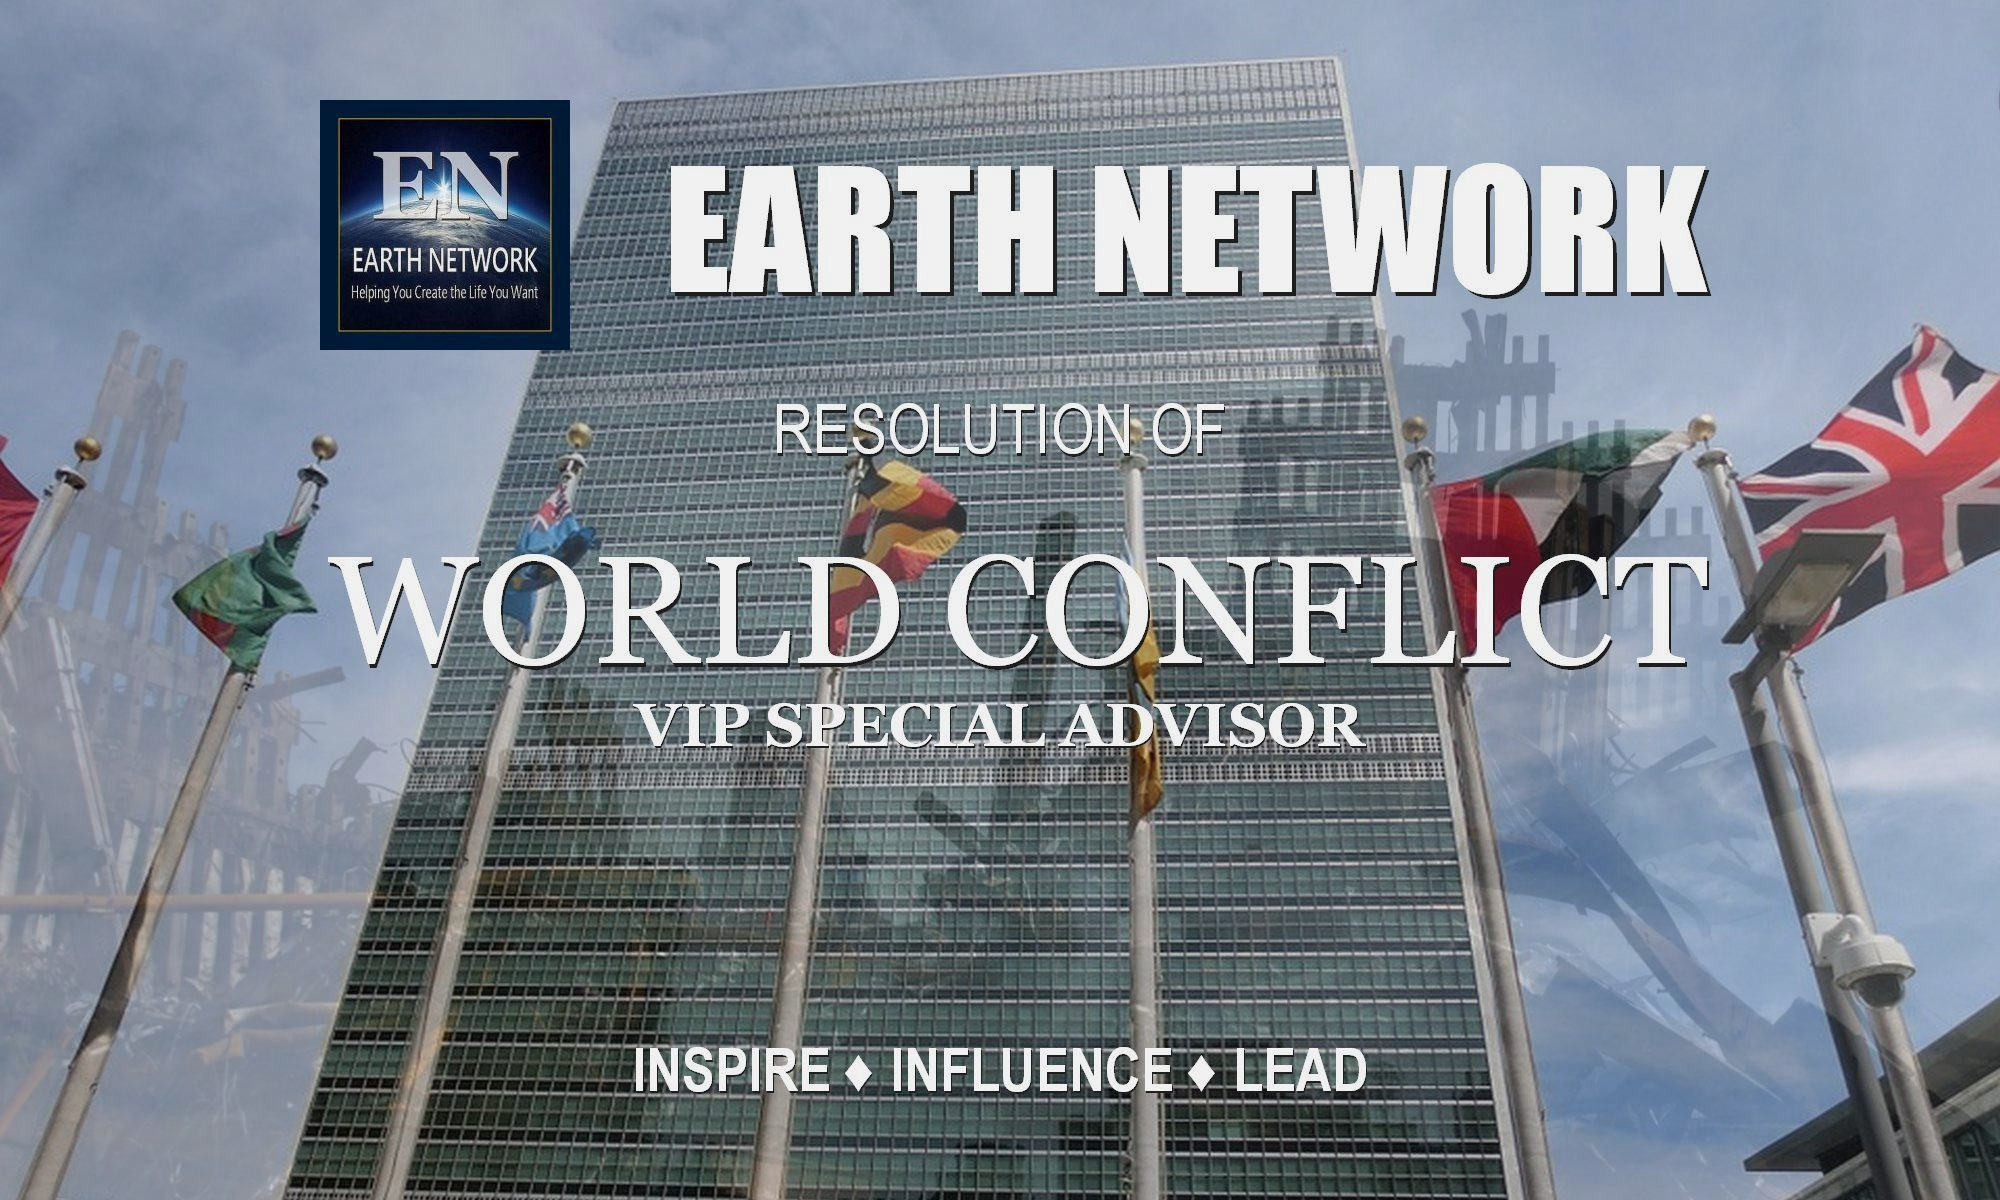 World conflict resolution. VIP consultant. Advise on matters of importance. William Eastwood